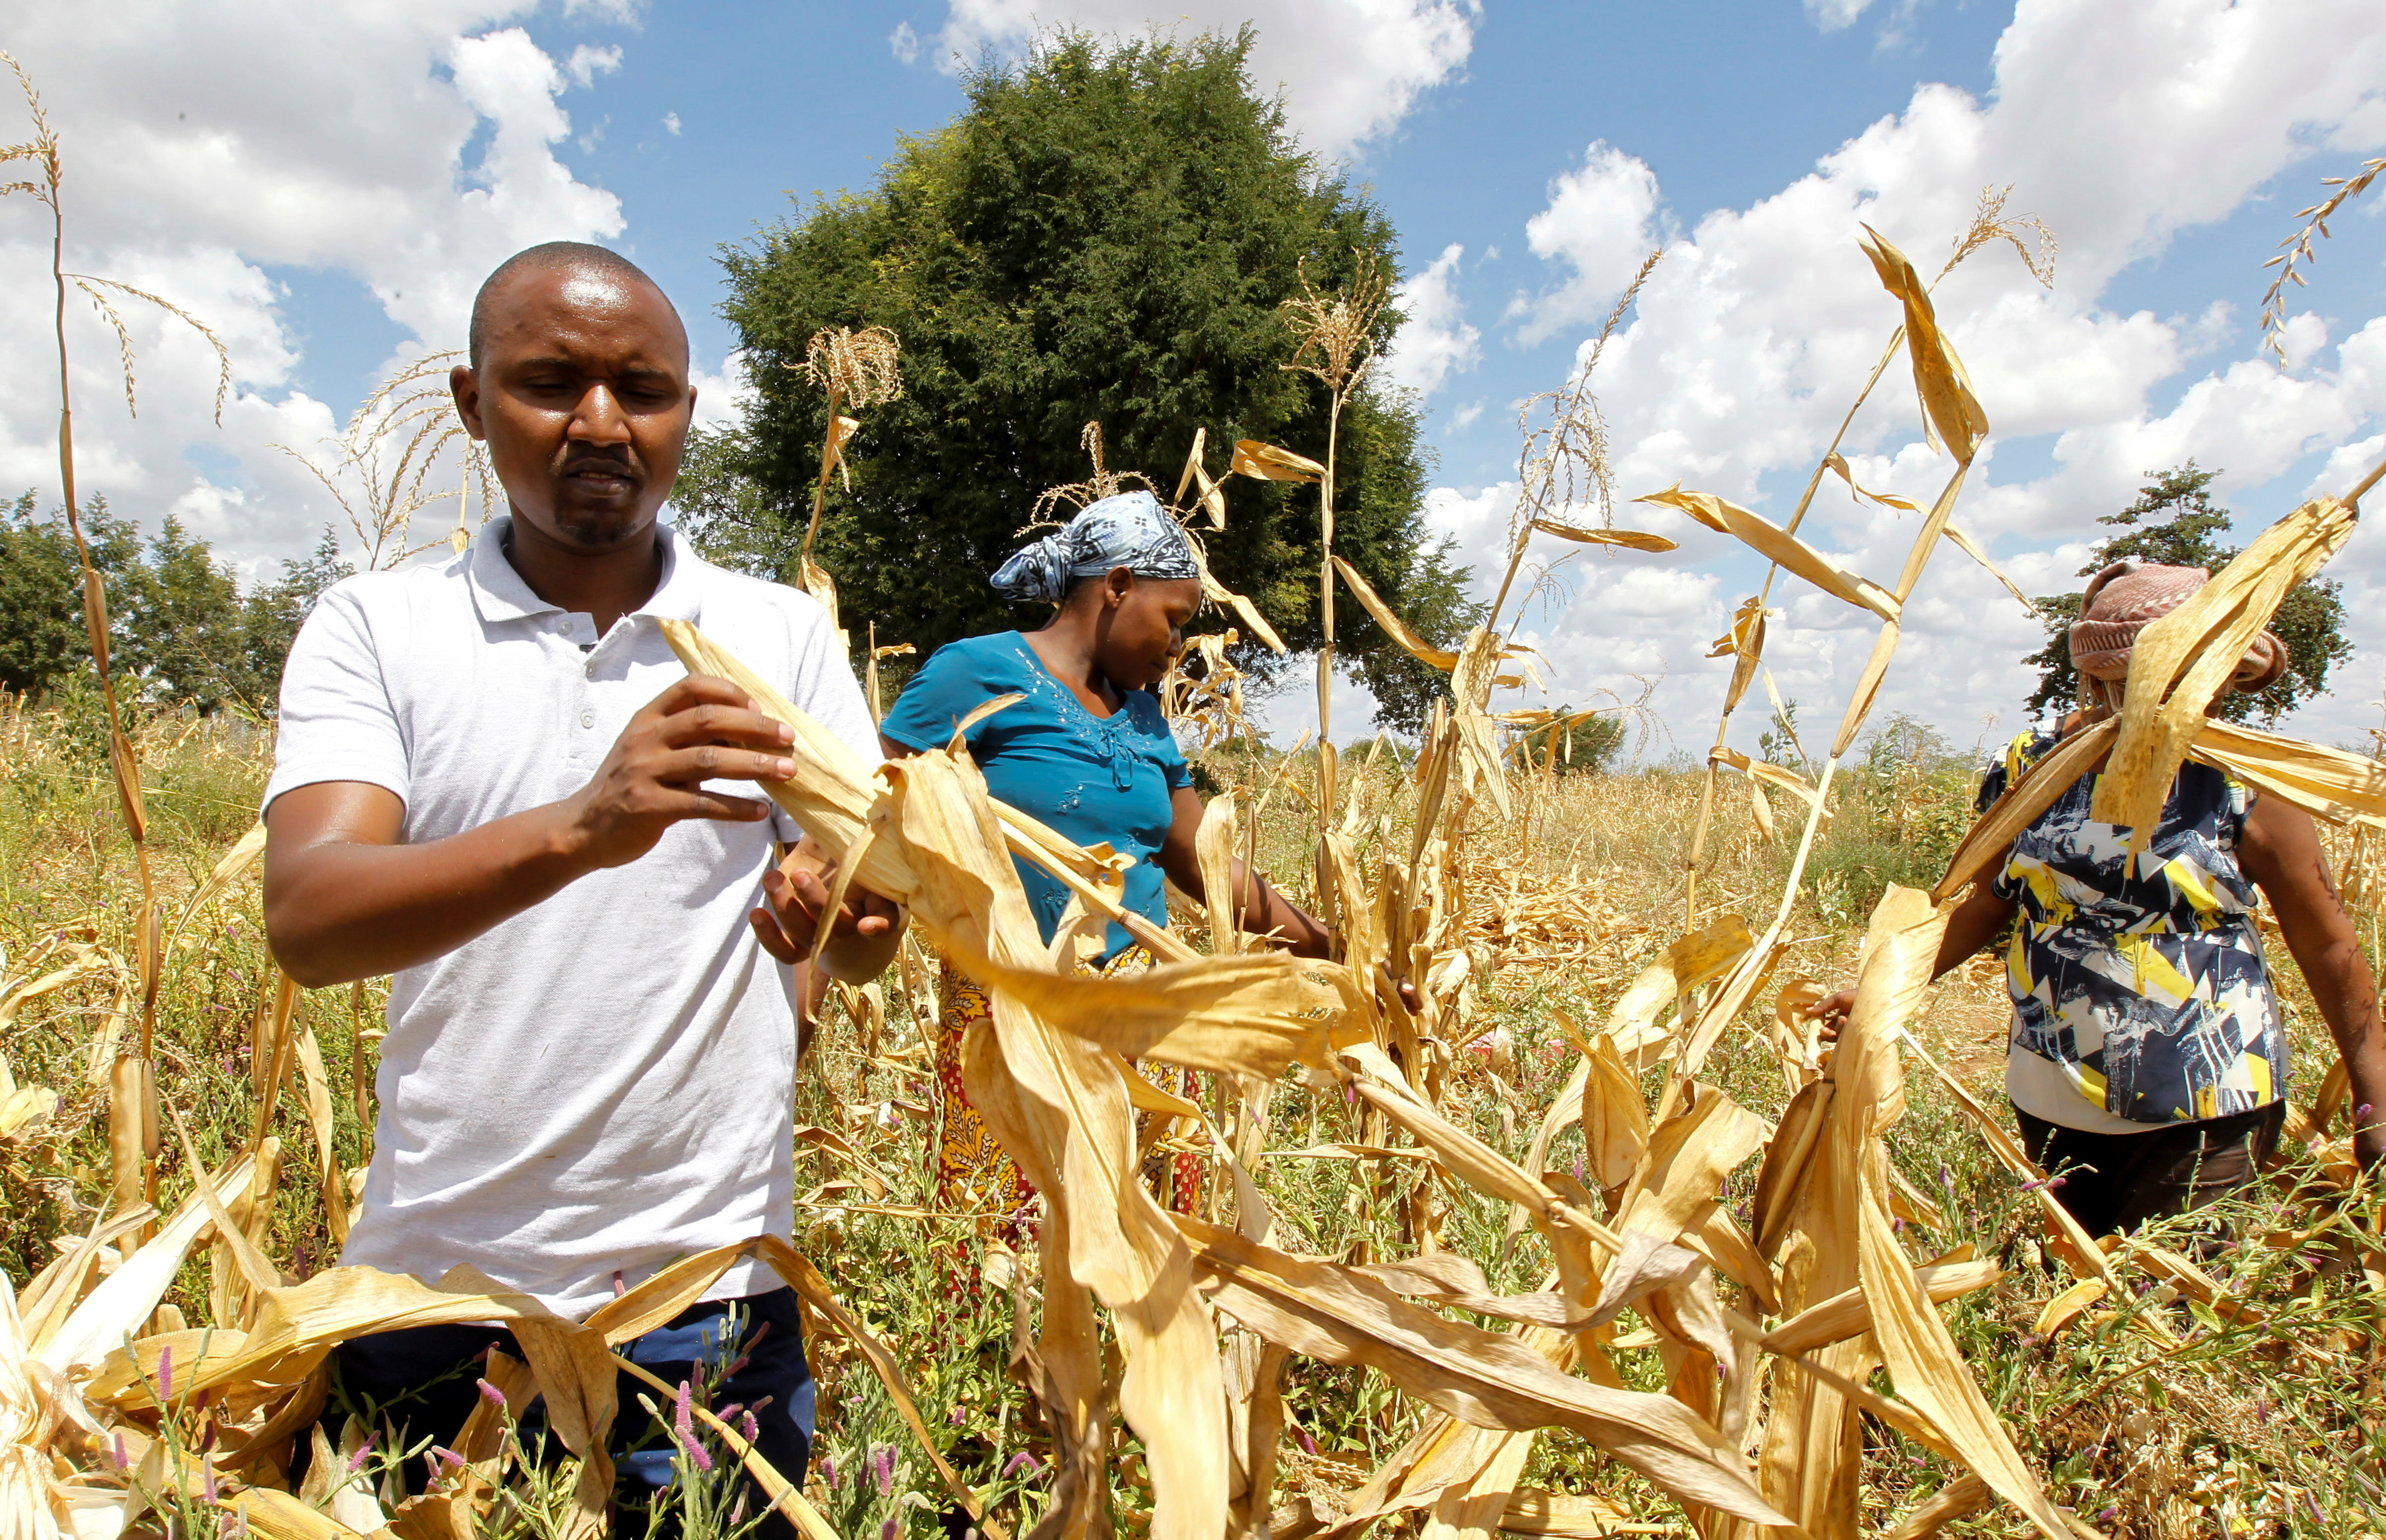 Pula operations manager Daniel Mbuvi assists a farmer in harvesting maize, in Kitui county, Kenya, March 17, 2021. Picture taken March 17, 2021. REUTERS/Monicah Mwangi